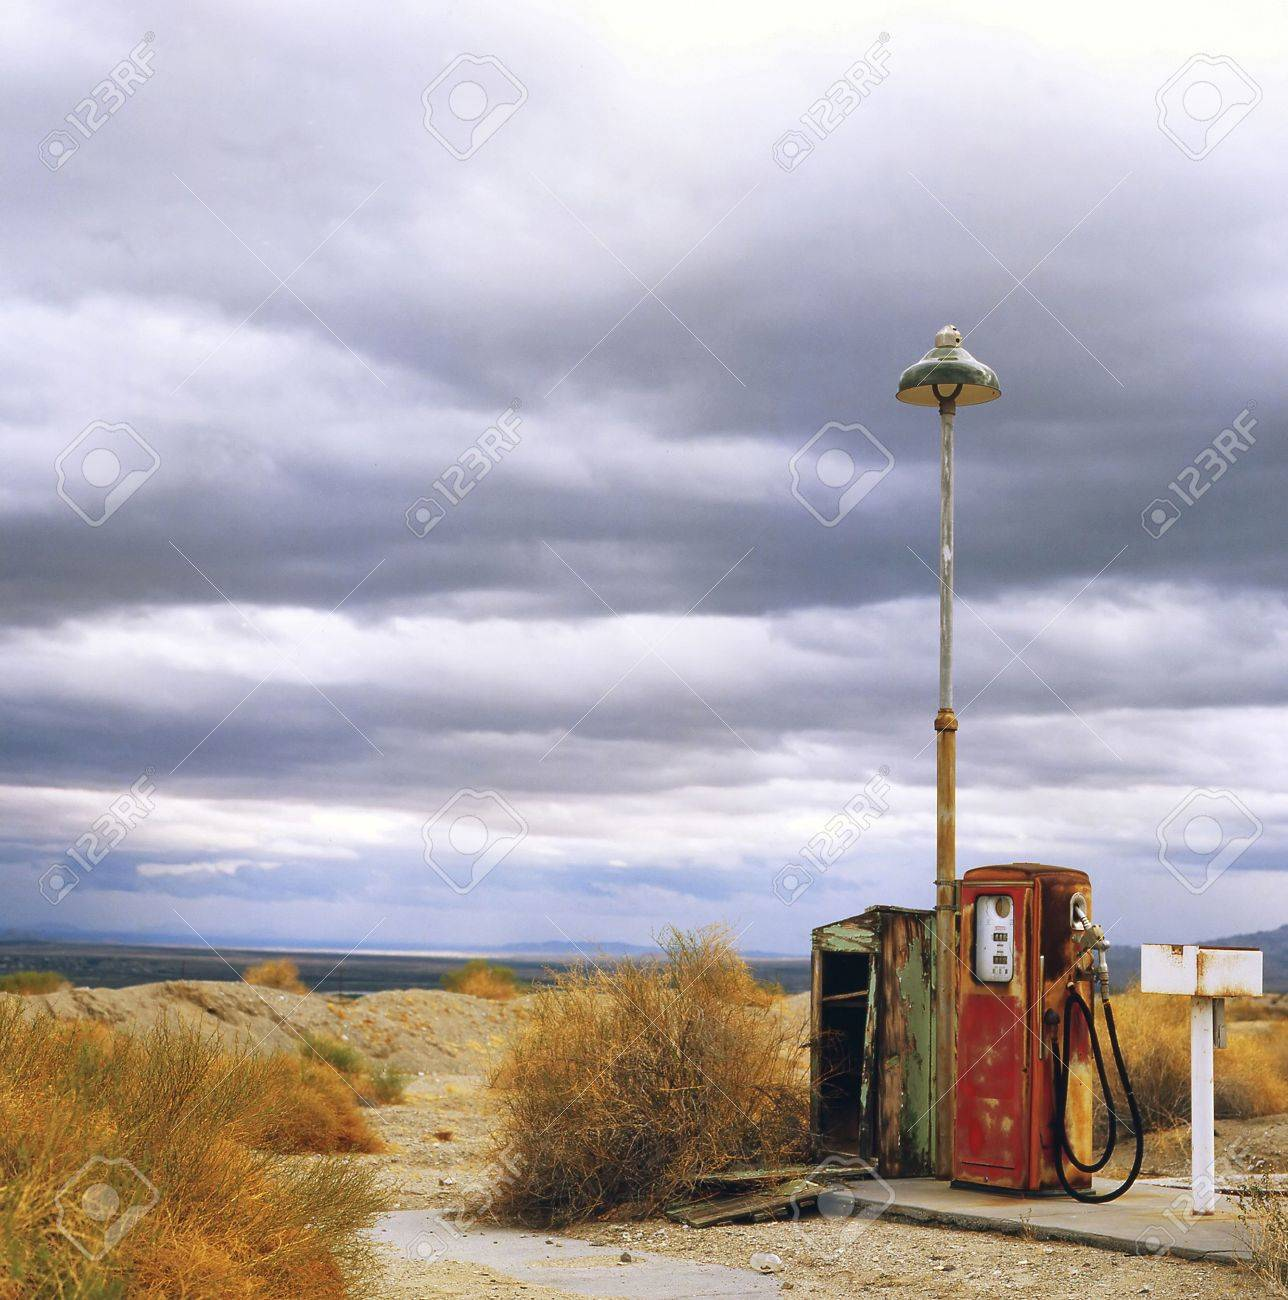 Gas station at a ghost town on route 66 in the U.S.A. - 3801508